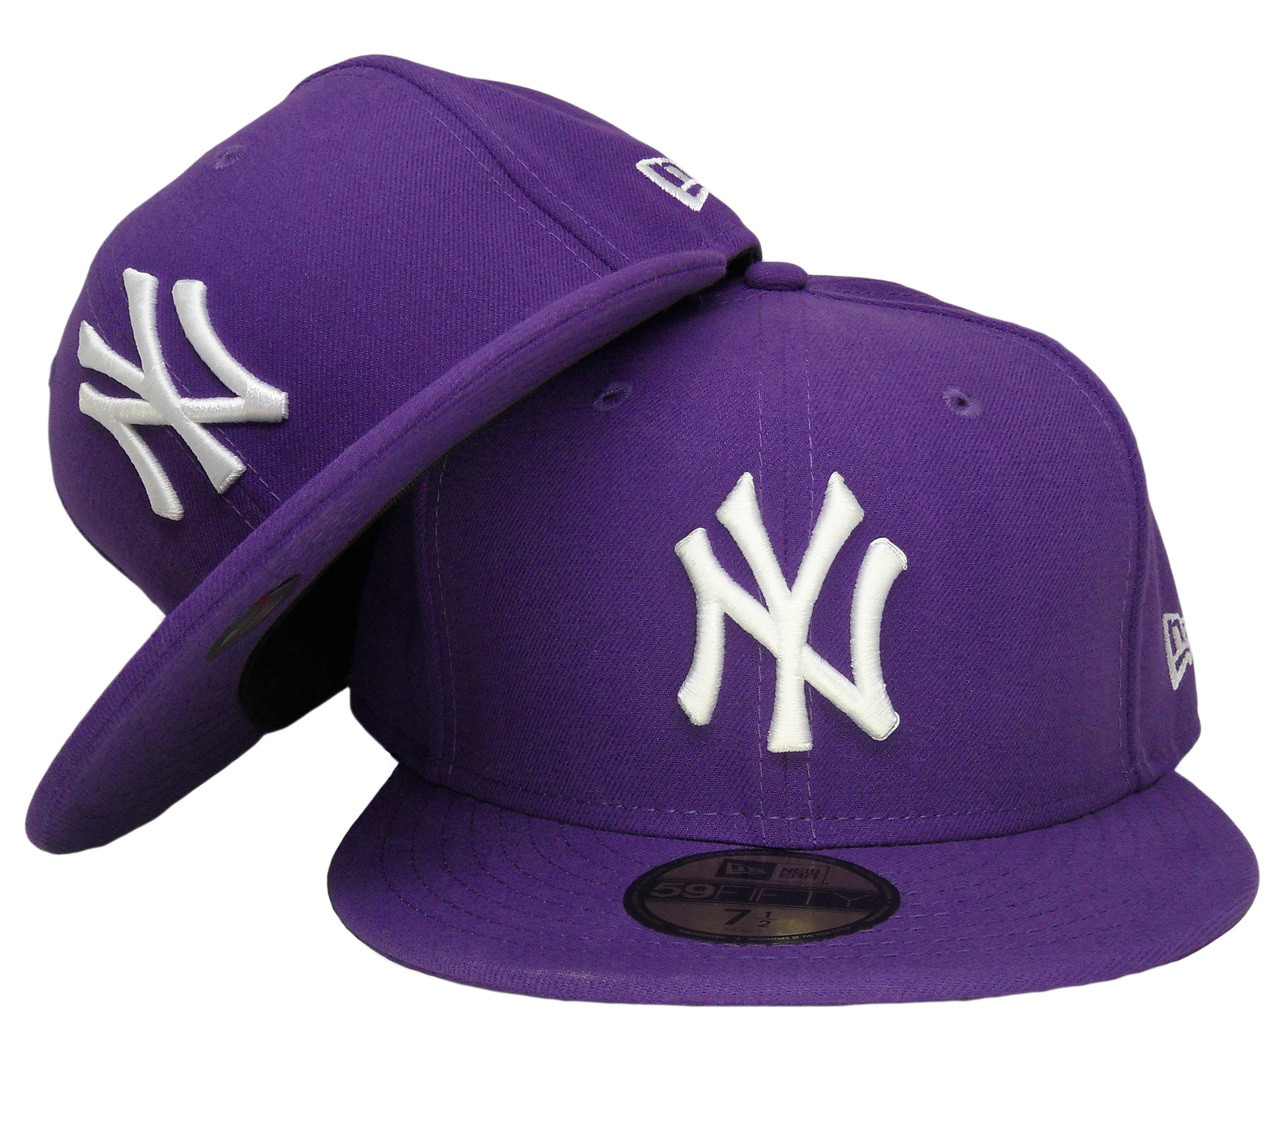 New York Yankees New Era 59Fifty Basic Fitted Hat - Deep Purple ... dc4e169c834